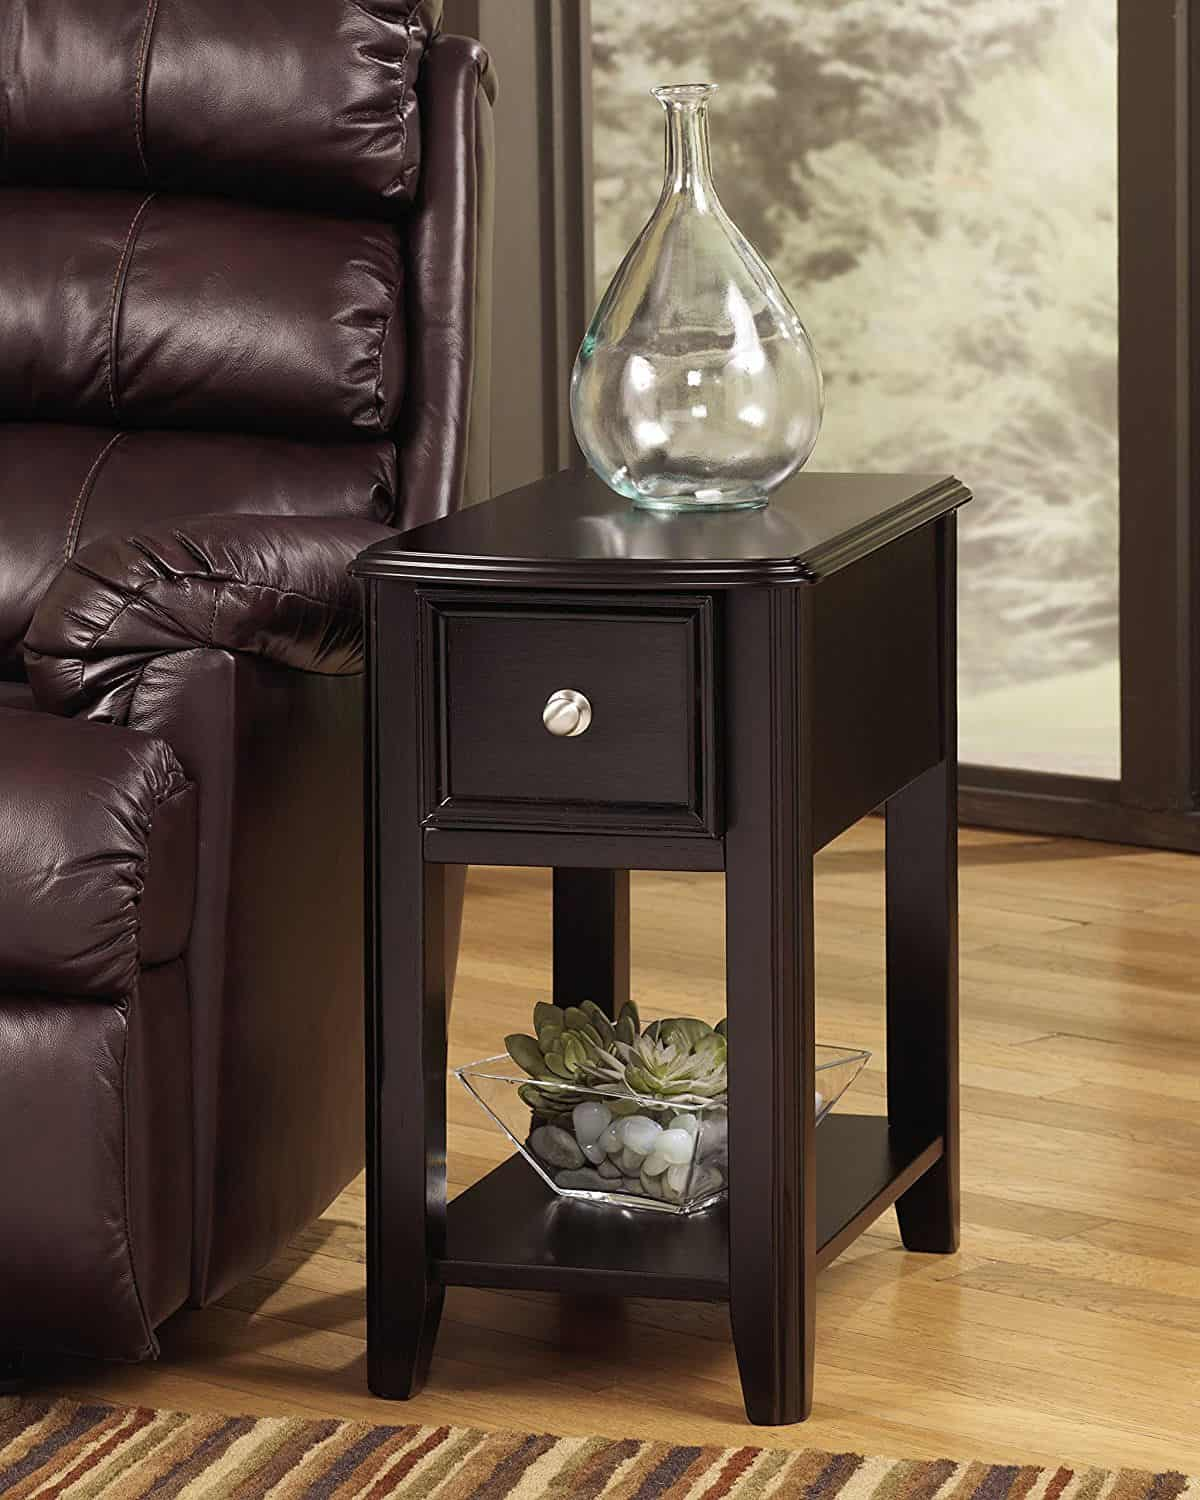 small side tables for living room ashley furniture chairs 14 terrific table options your 2019 signature design breegin rectangular chair end with nickel tone hardware and